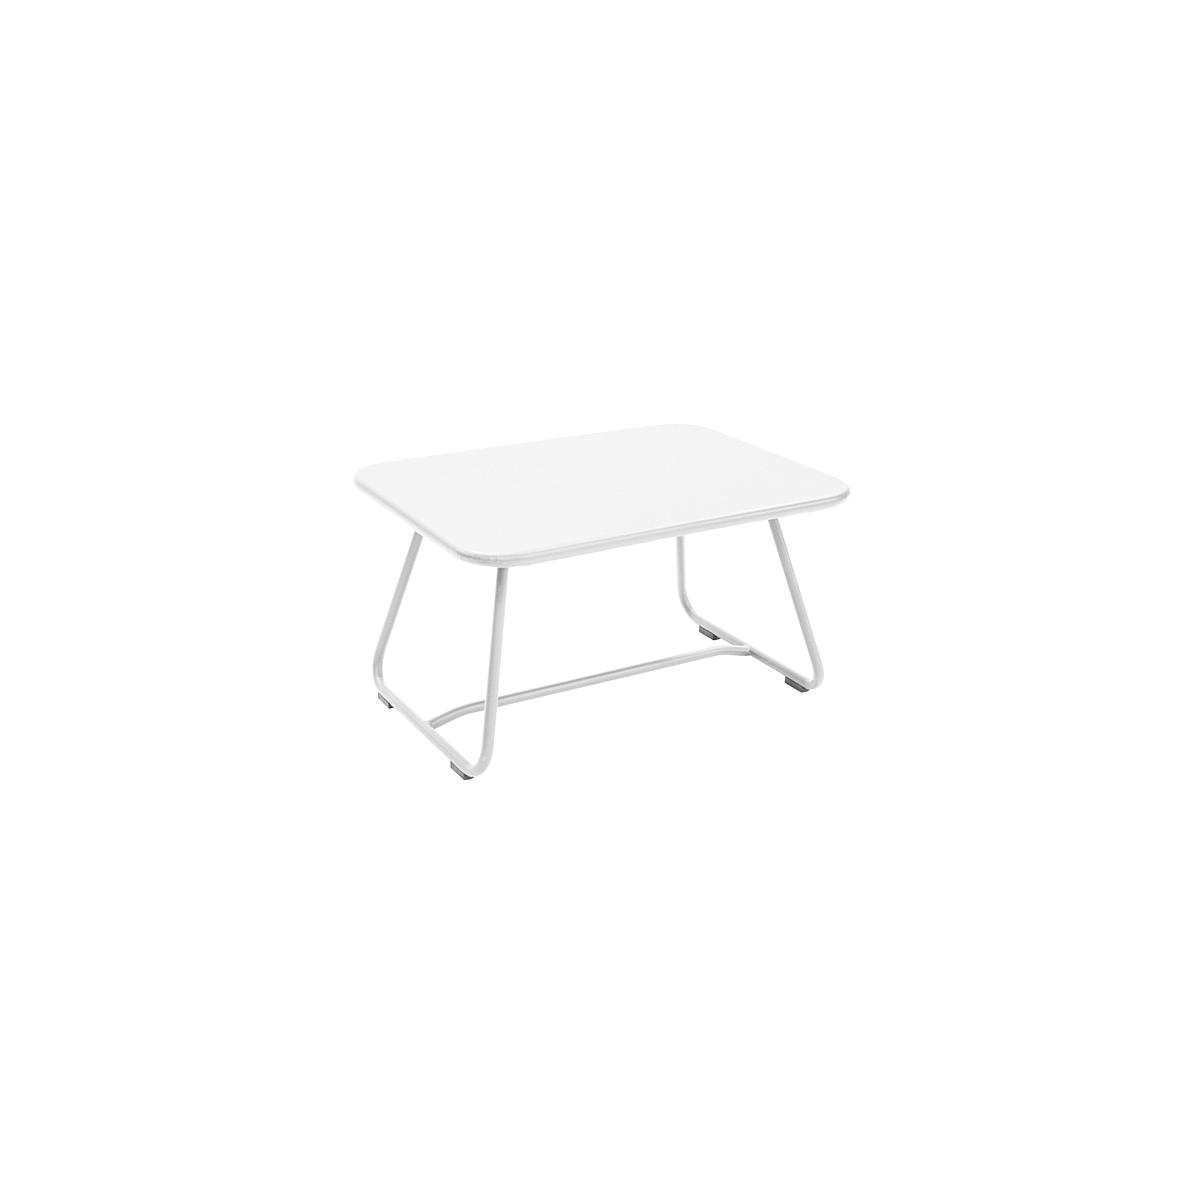 SIXTIES by Fermob Table basse Blanc coton